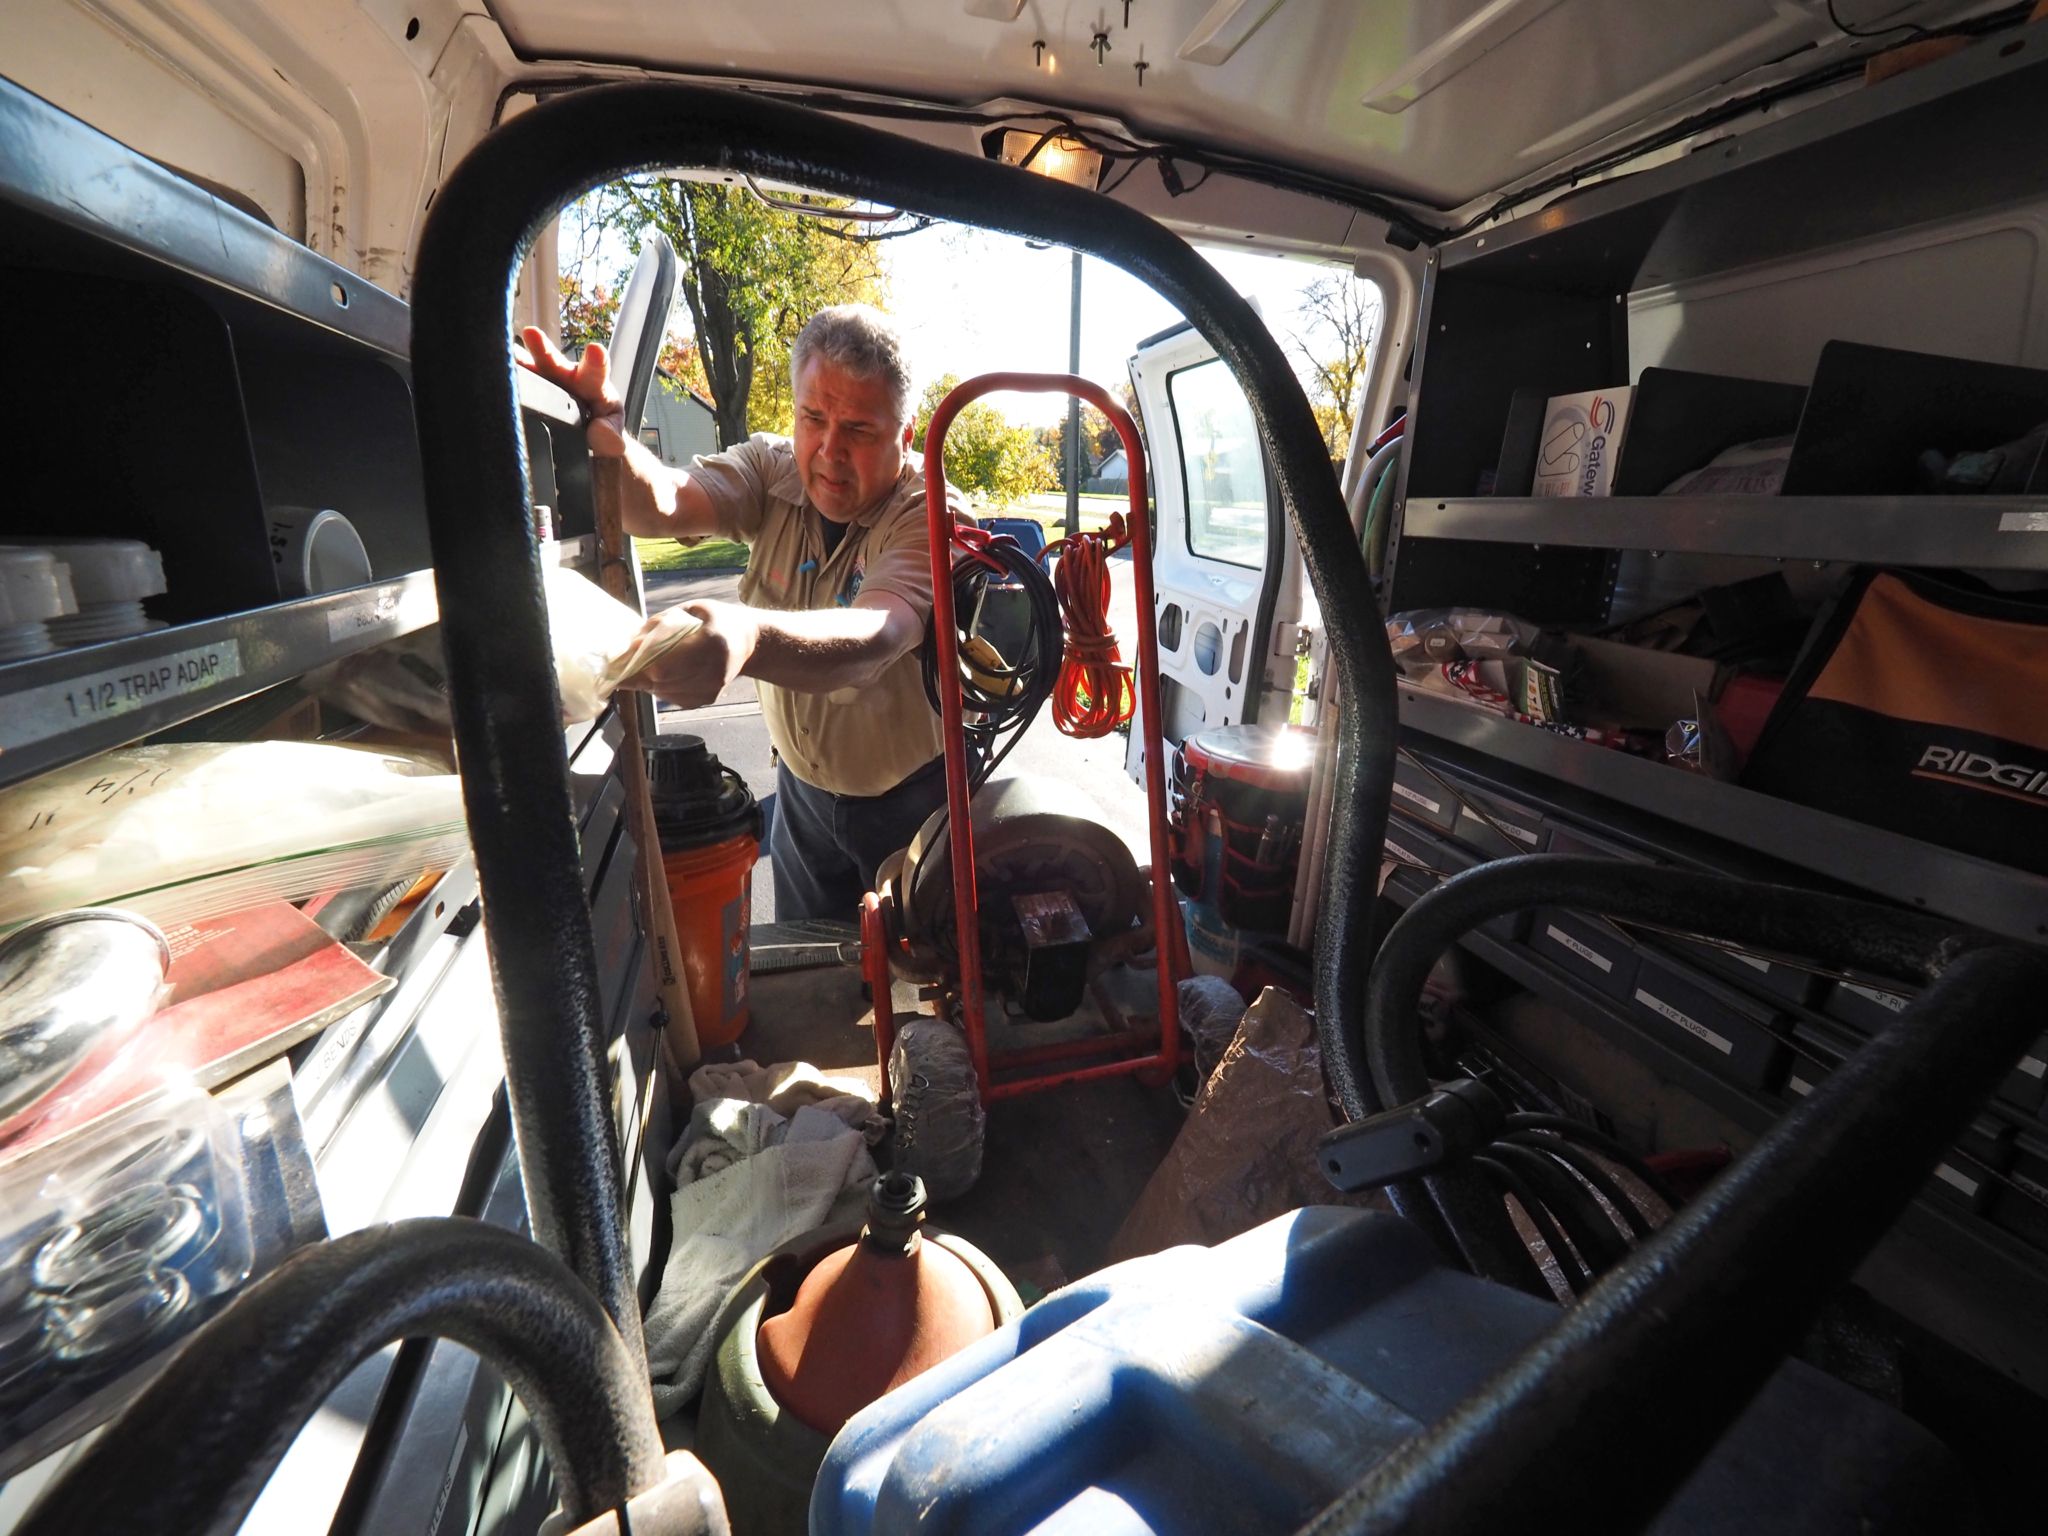 Steve Nerheim, owner of Steve's Professional Sewer & Drain Service, featured in the January issue, loads his 2007 Ford E250 van and checks supplies before heading out for the day from his home base in New Brighton, Minnesota.